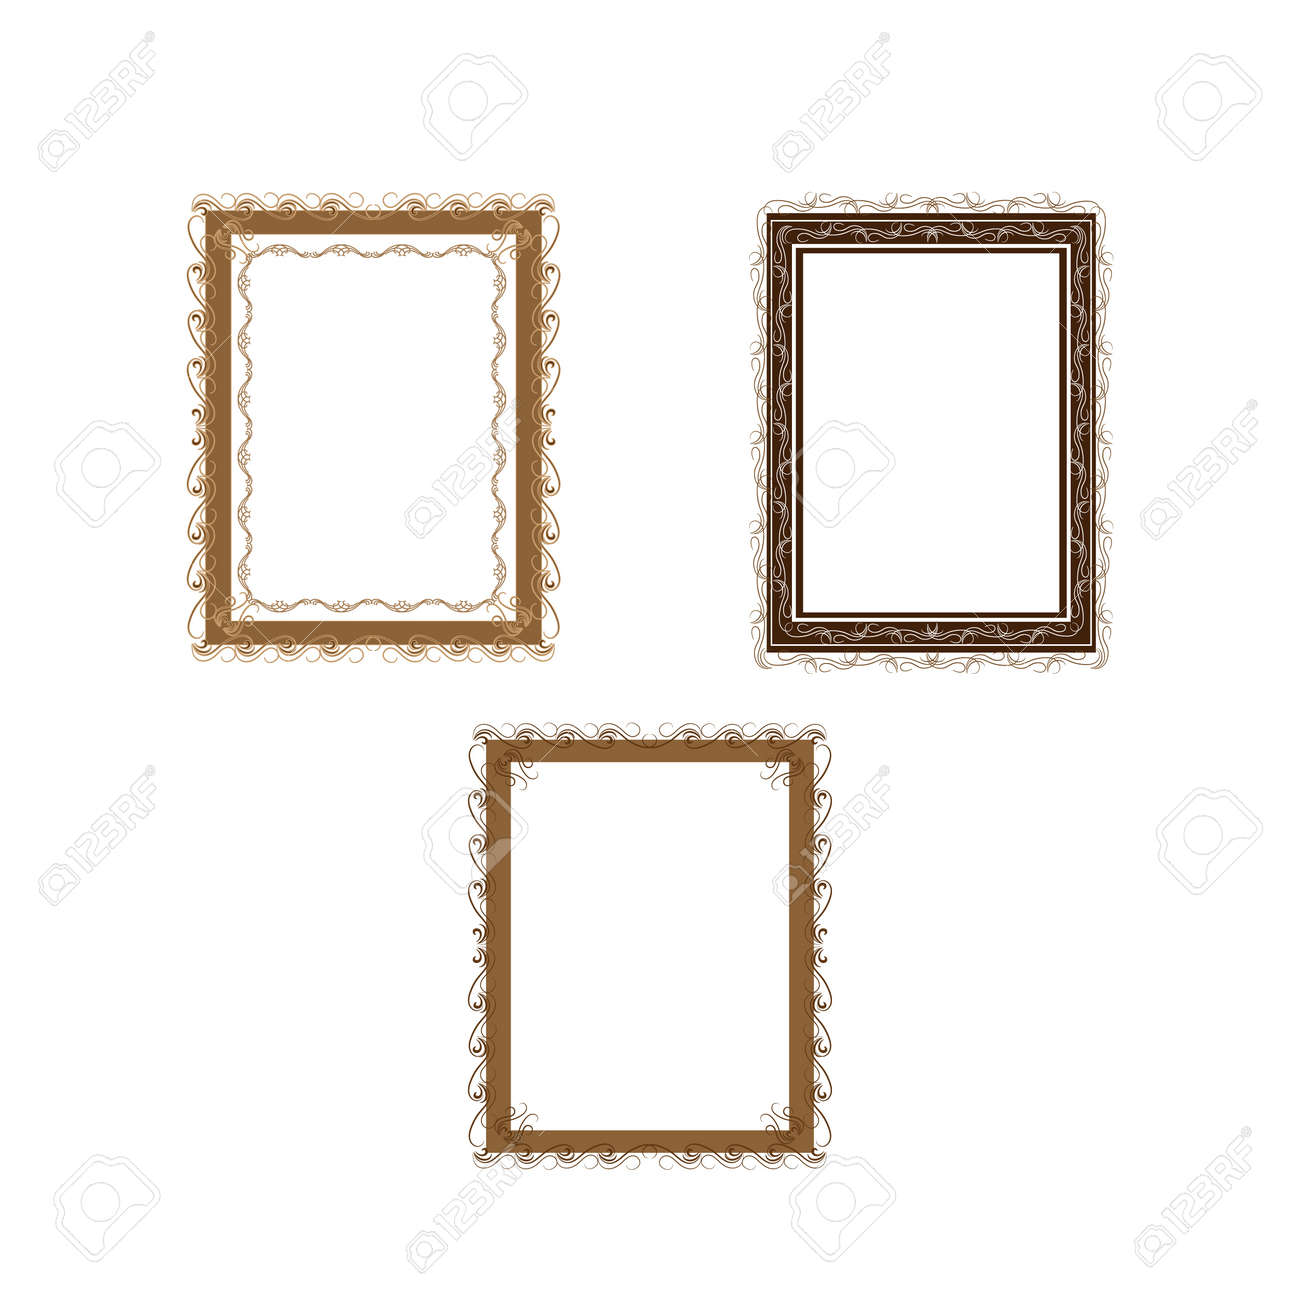 Frame with wavy line for pfoto. Vector. - 159702363